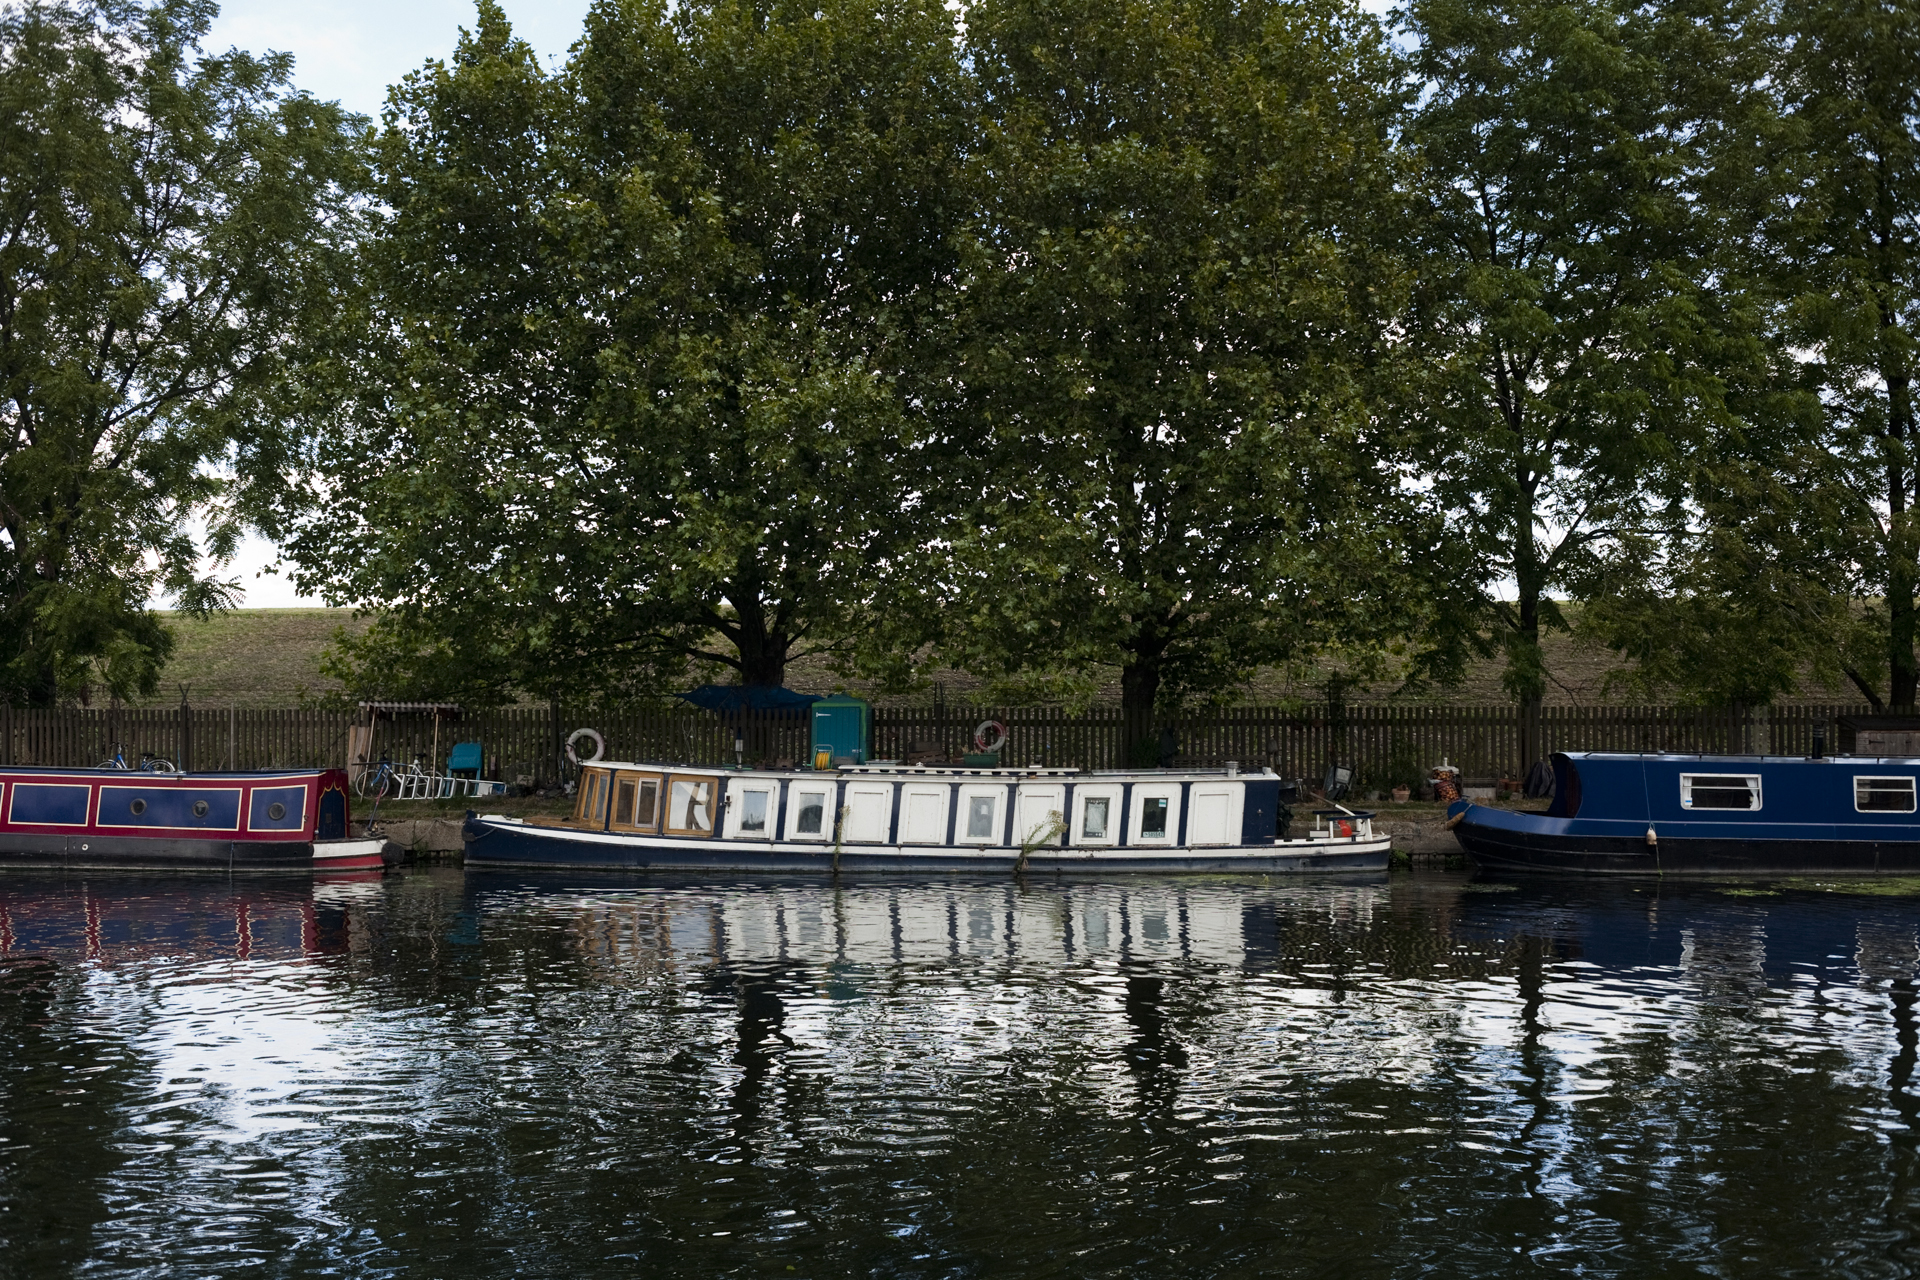 Lee Valley -  TimeOut